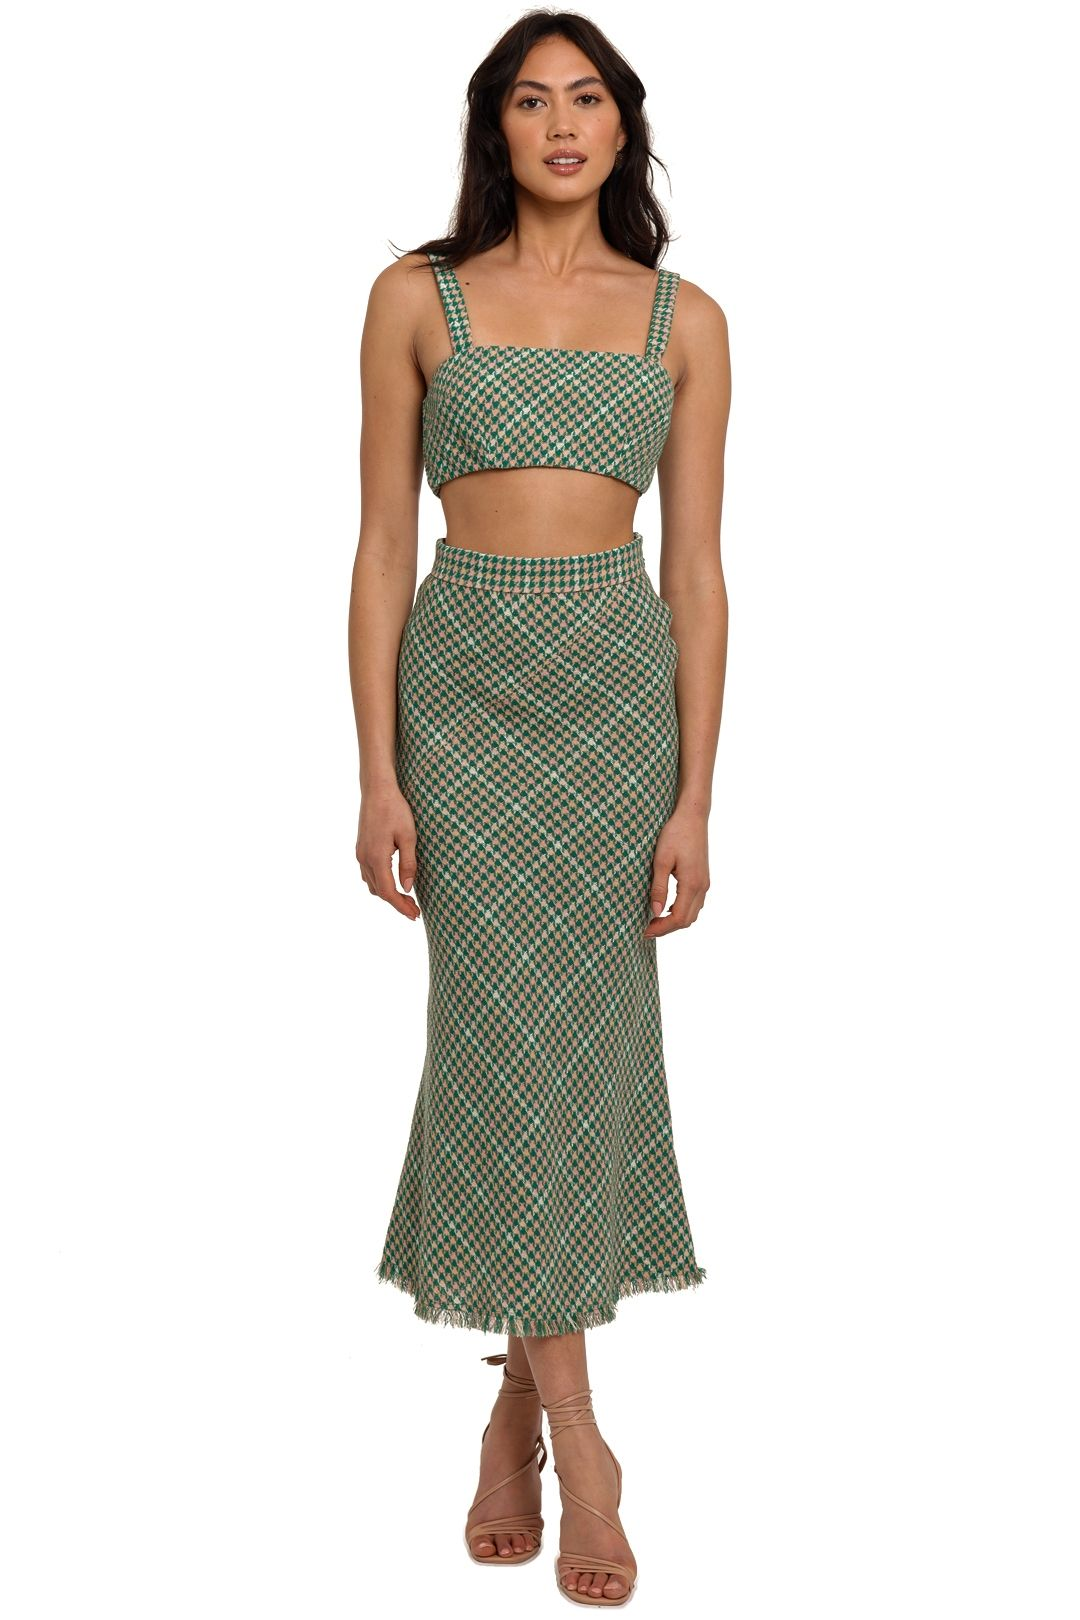 By Johnny Demi Tweed Bra and Skirt Set cropped